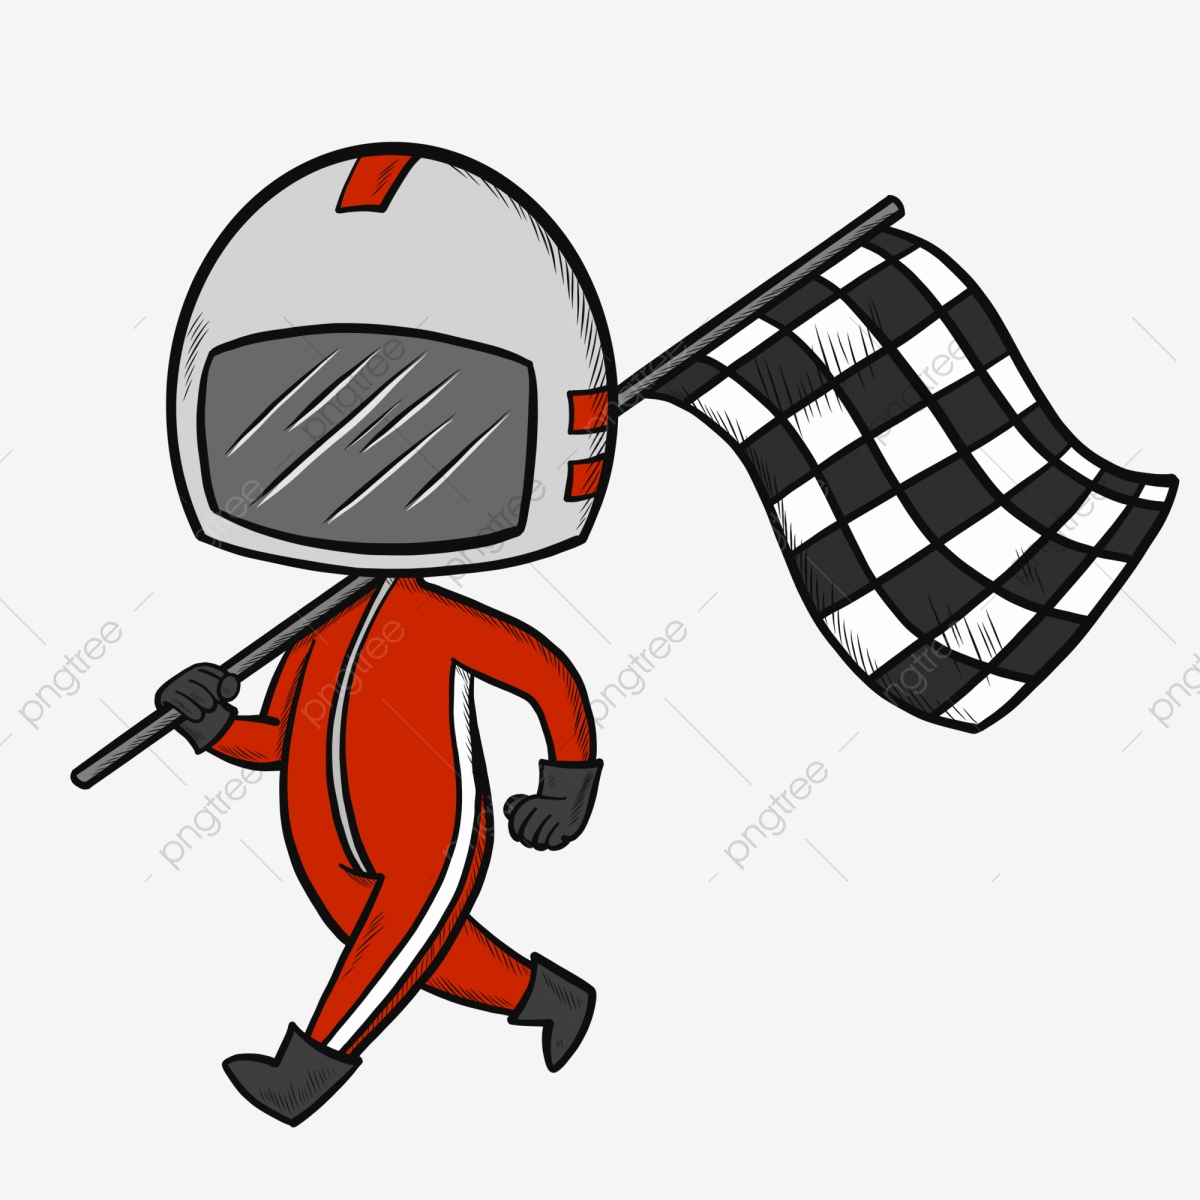 Hand Drawn Illustration Racing Illustration F1 Illustration Racer Rally Driver Champion Winning Illustration Champion Rider Illustration Png Transparent Clipart Image And Psd File For Free Download